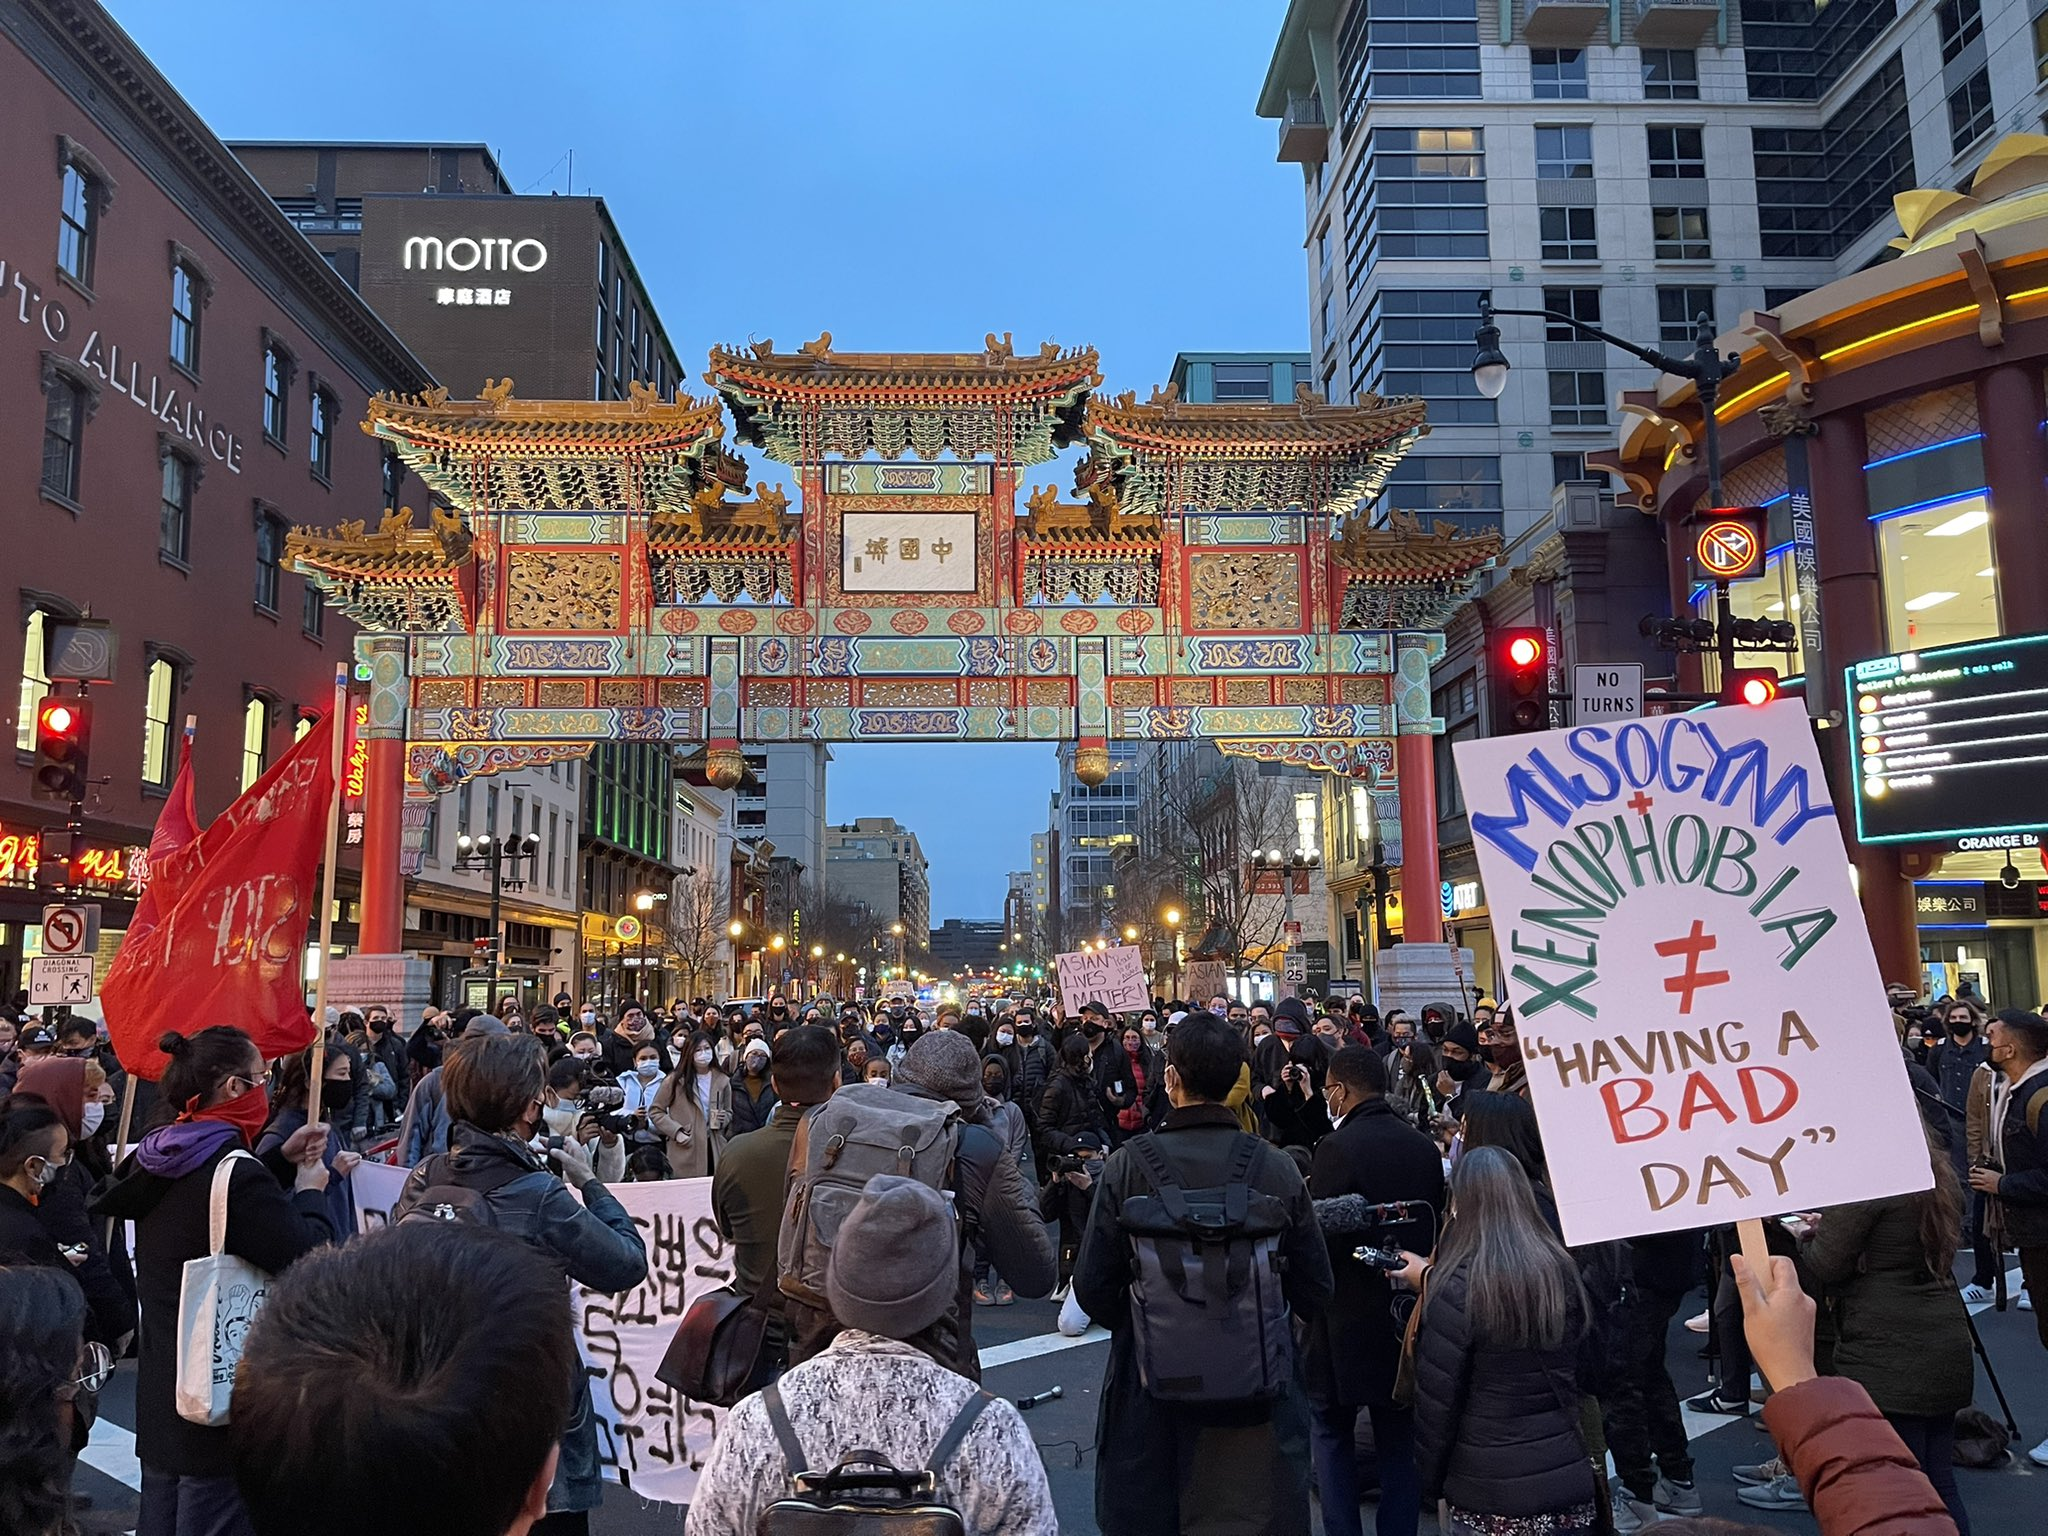 Hundreds of Protesters in Washington D.C. March Against Asian-Targeted Violence